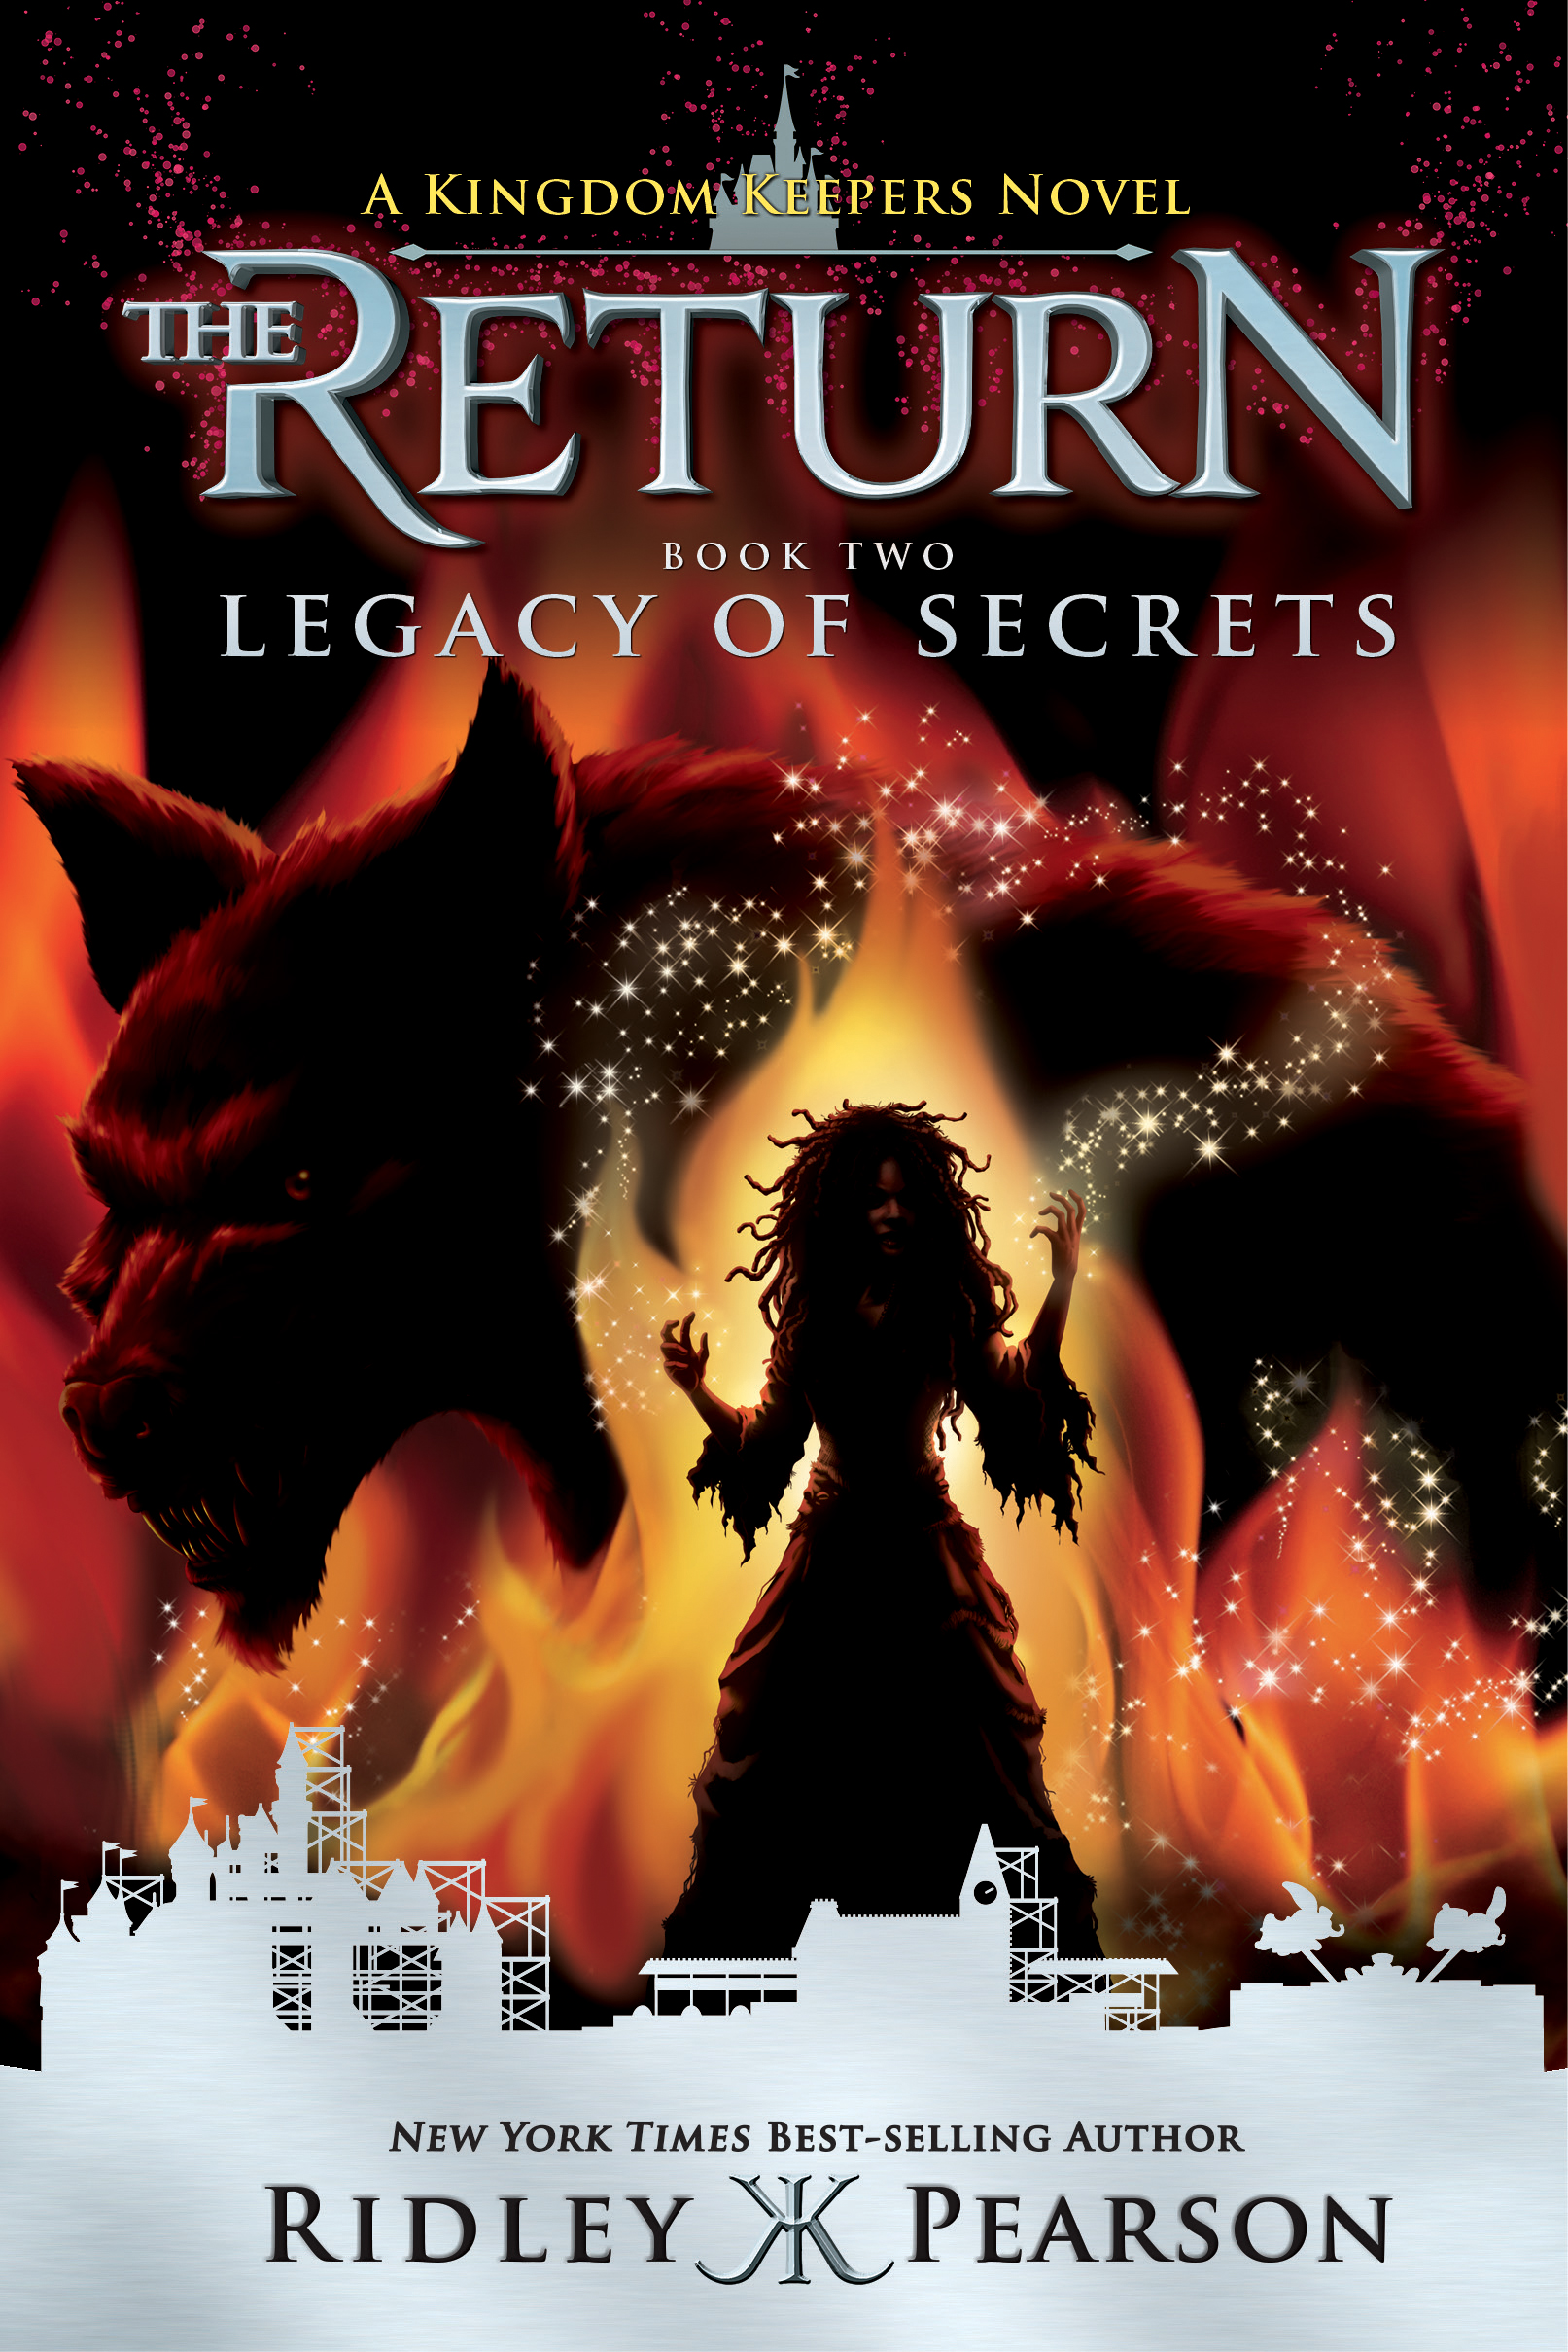 The Return: Legacy of Secrets